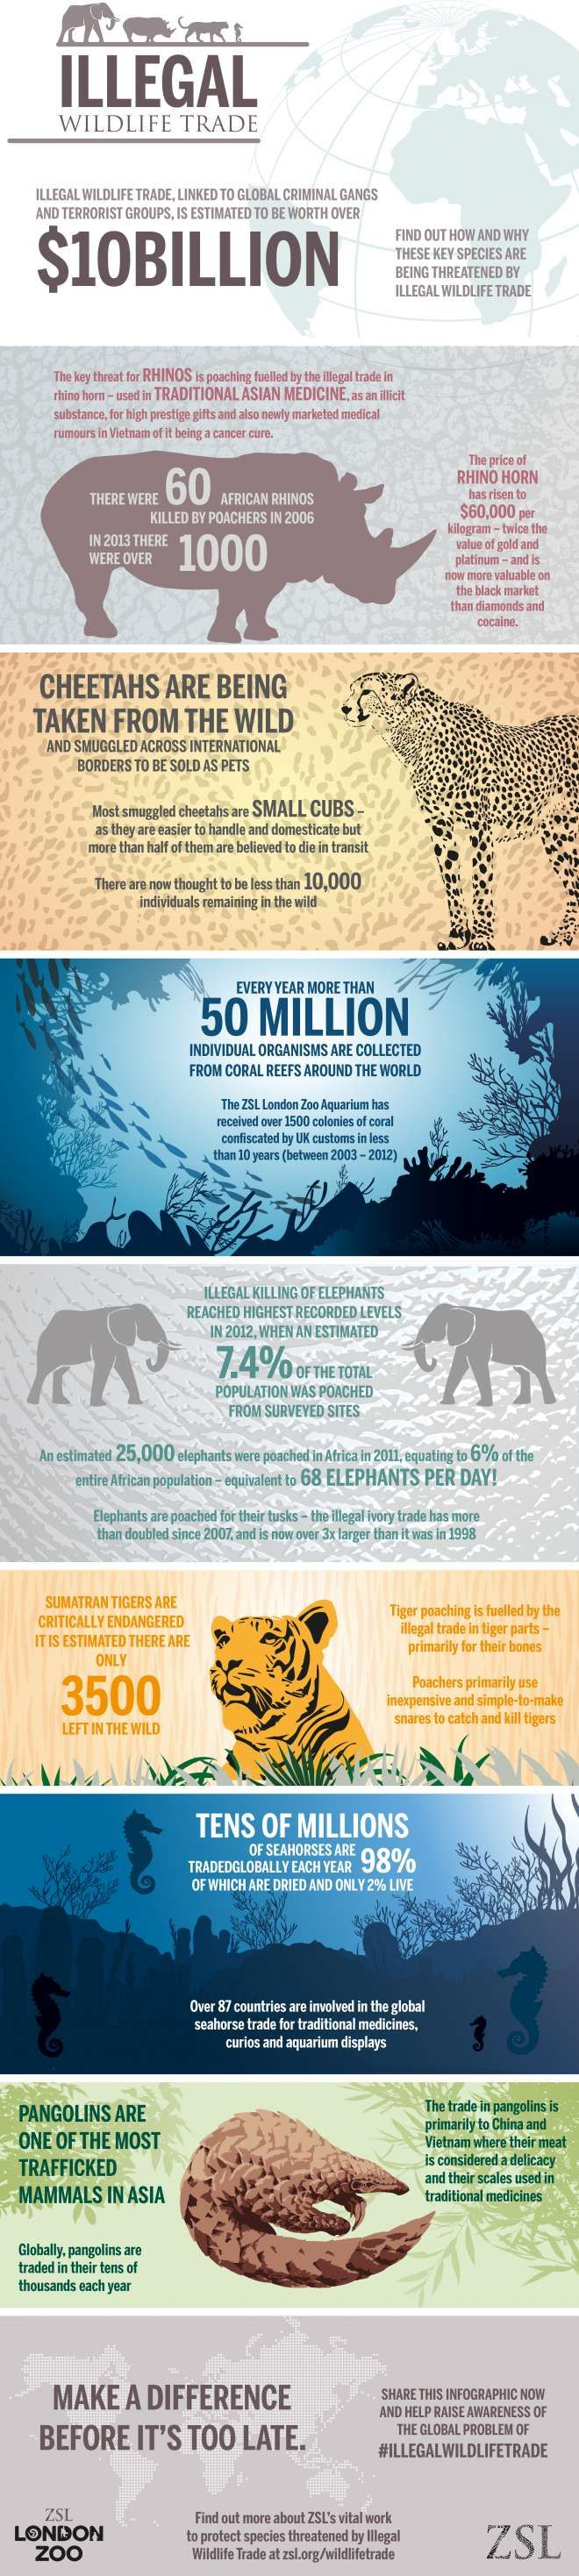 The Illegal Wildlife Trade: One of the greatest threats facing species today.